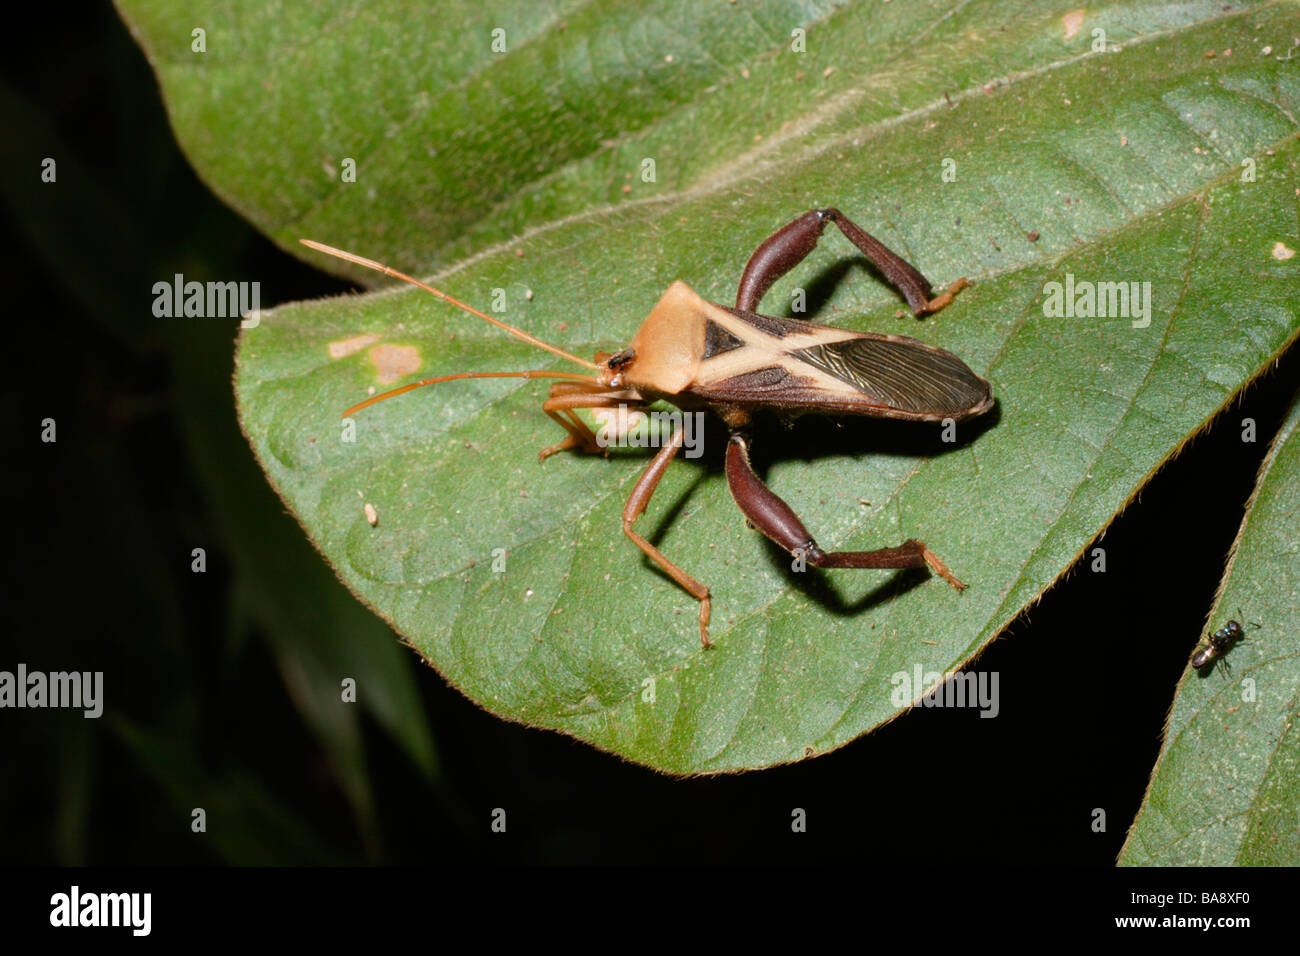 Leaf Footed Bug Stock Photos & Leaf Footed Bug Stock Images - Page ...